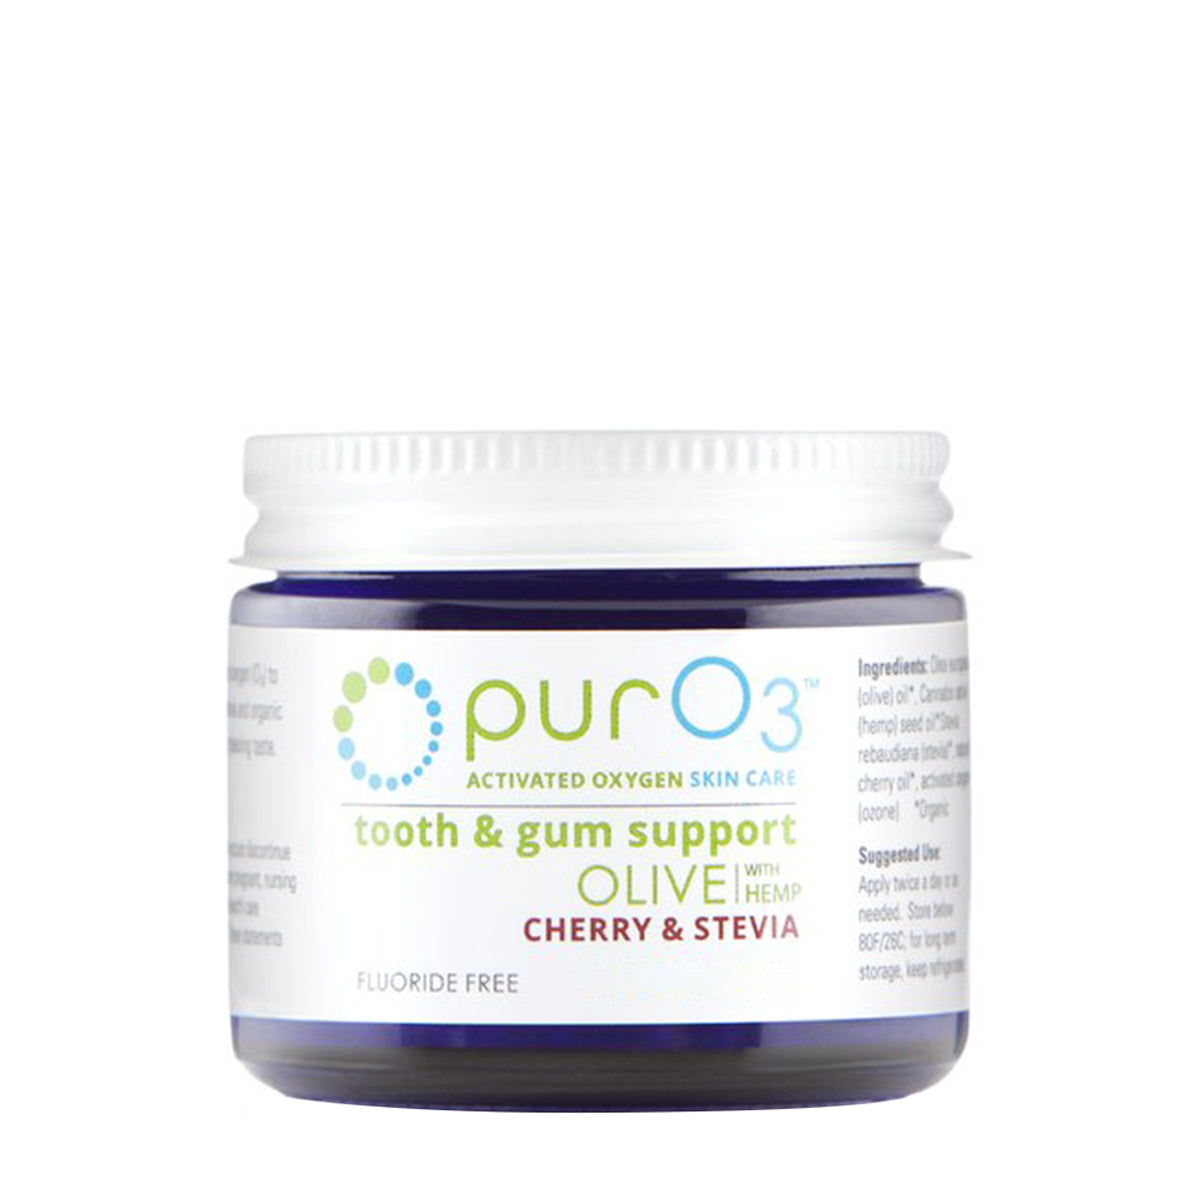 PurO3 Ozonated Tooth and Gum Support Cherry Stevia - SAMPLE (5ml)